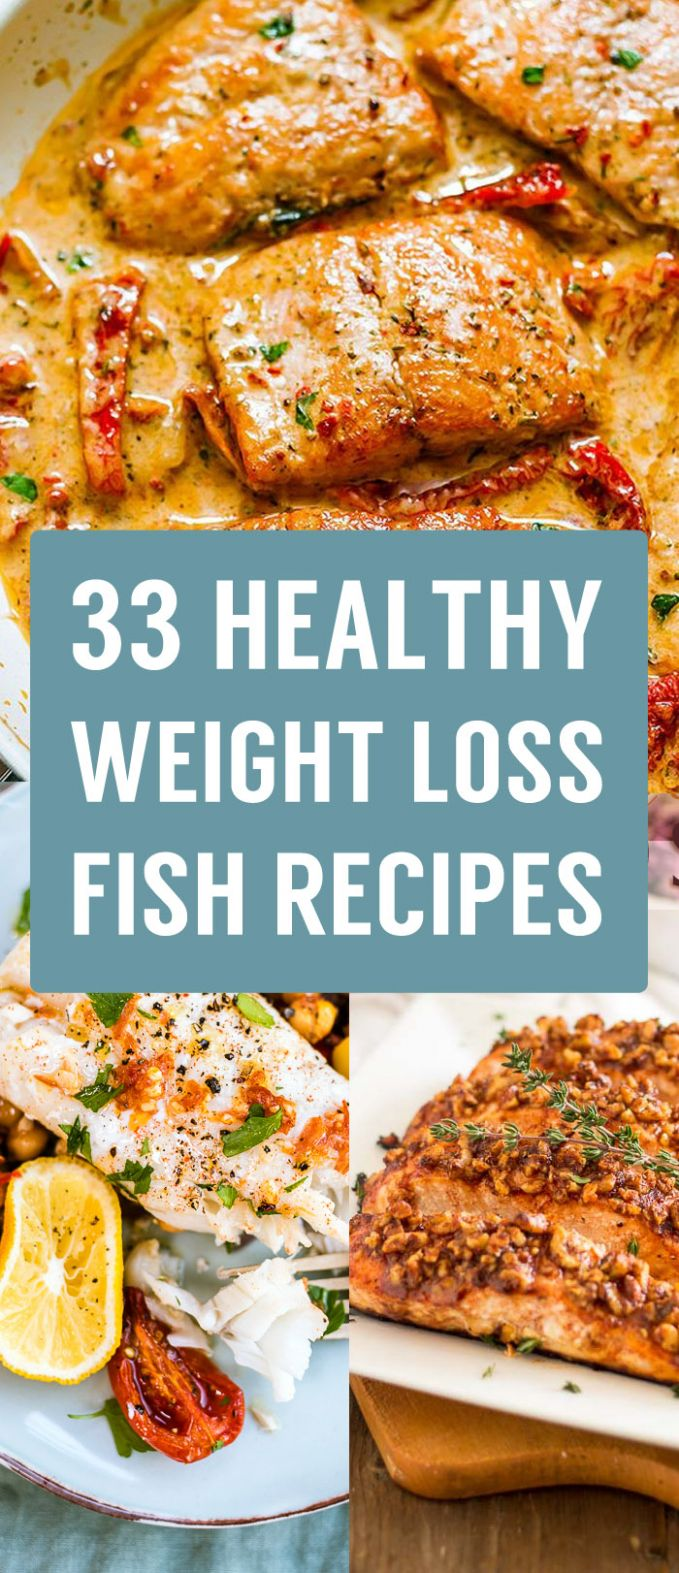 9 Weight Loss Fish Recipes That You Will Love! – TrimmedandToned - Weight Loss Fish Recipes